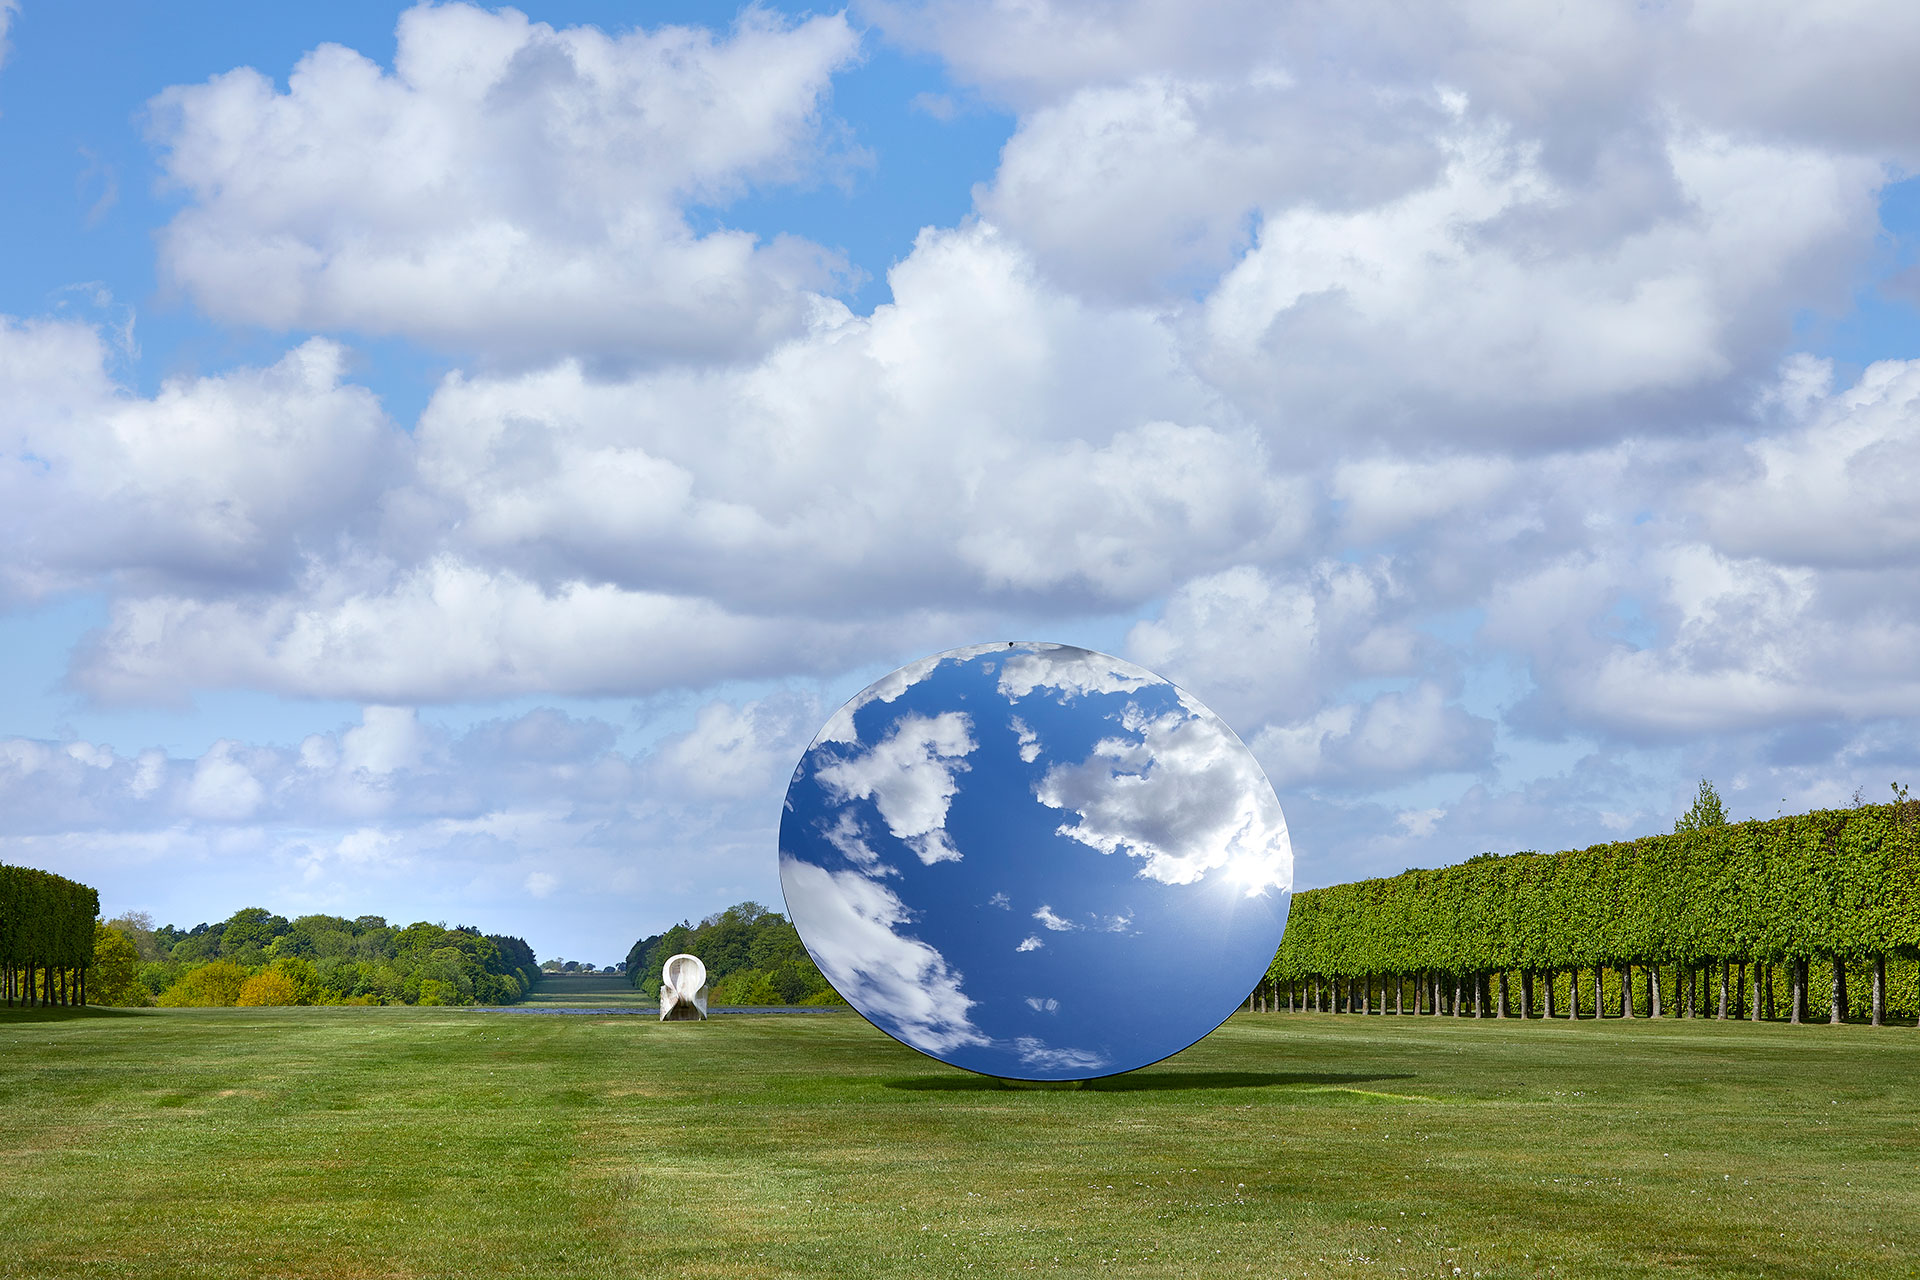 Exhibition view, Anish Kapoor at Houghton Hall. © Anish Kapoor. All rights reserved DACS, 2020. Photo by Pete Huggins. Featured: Sky Mirror, 2018, stainless steel. Eight Eight, 2004, onyx. Courtesy the artist and Lisson Gallery.